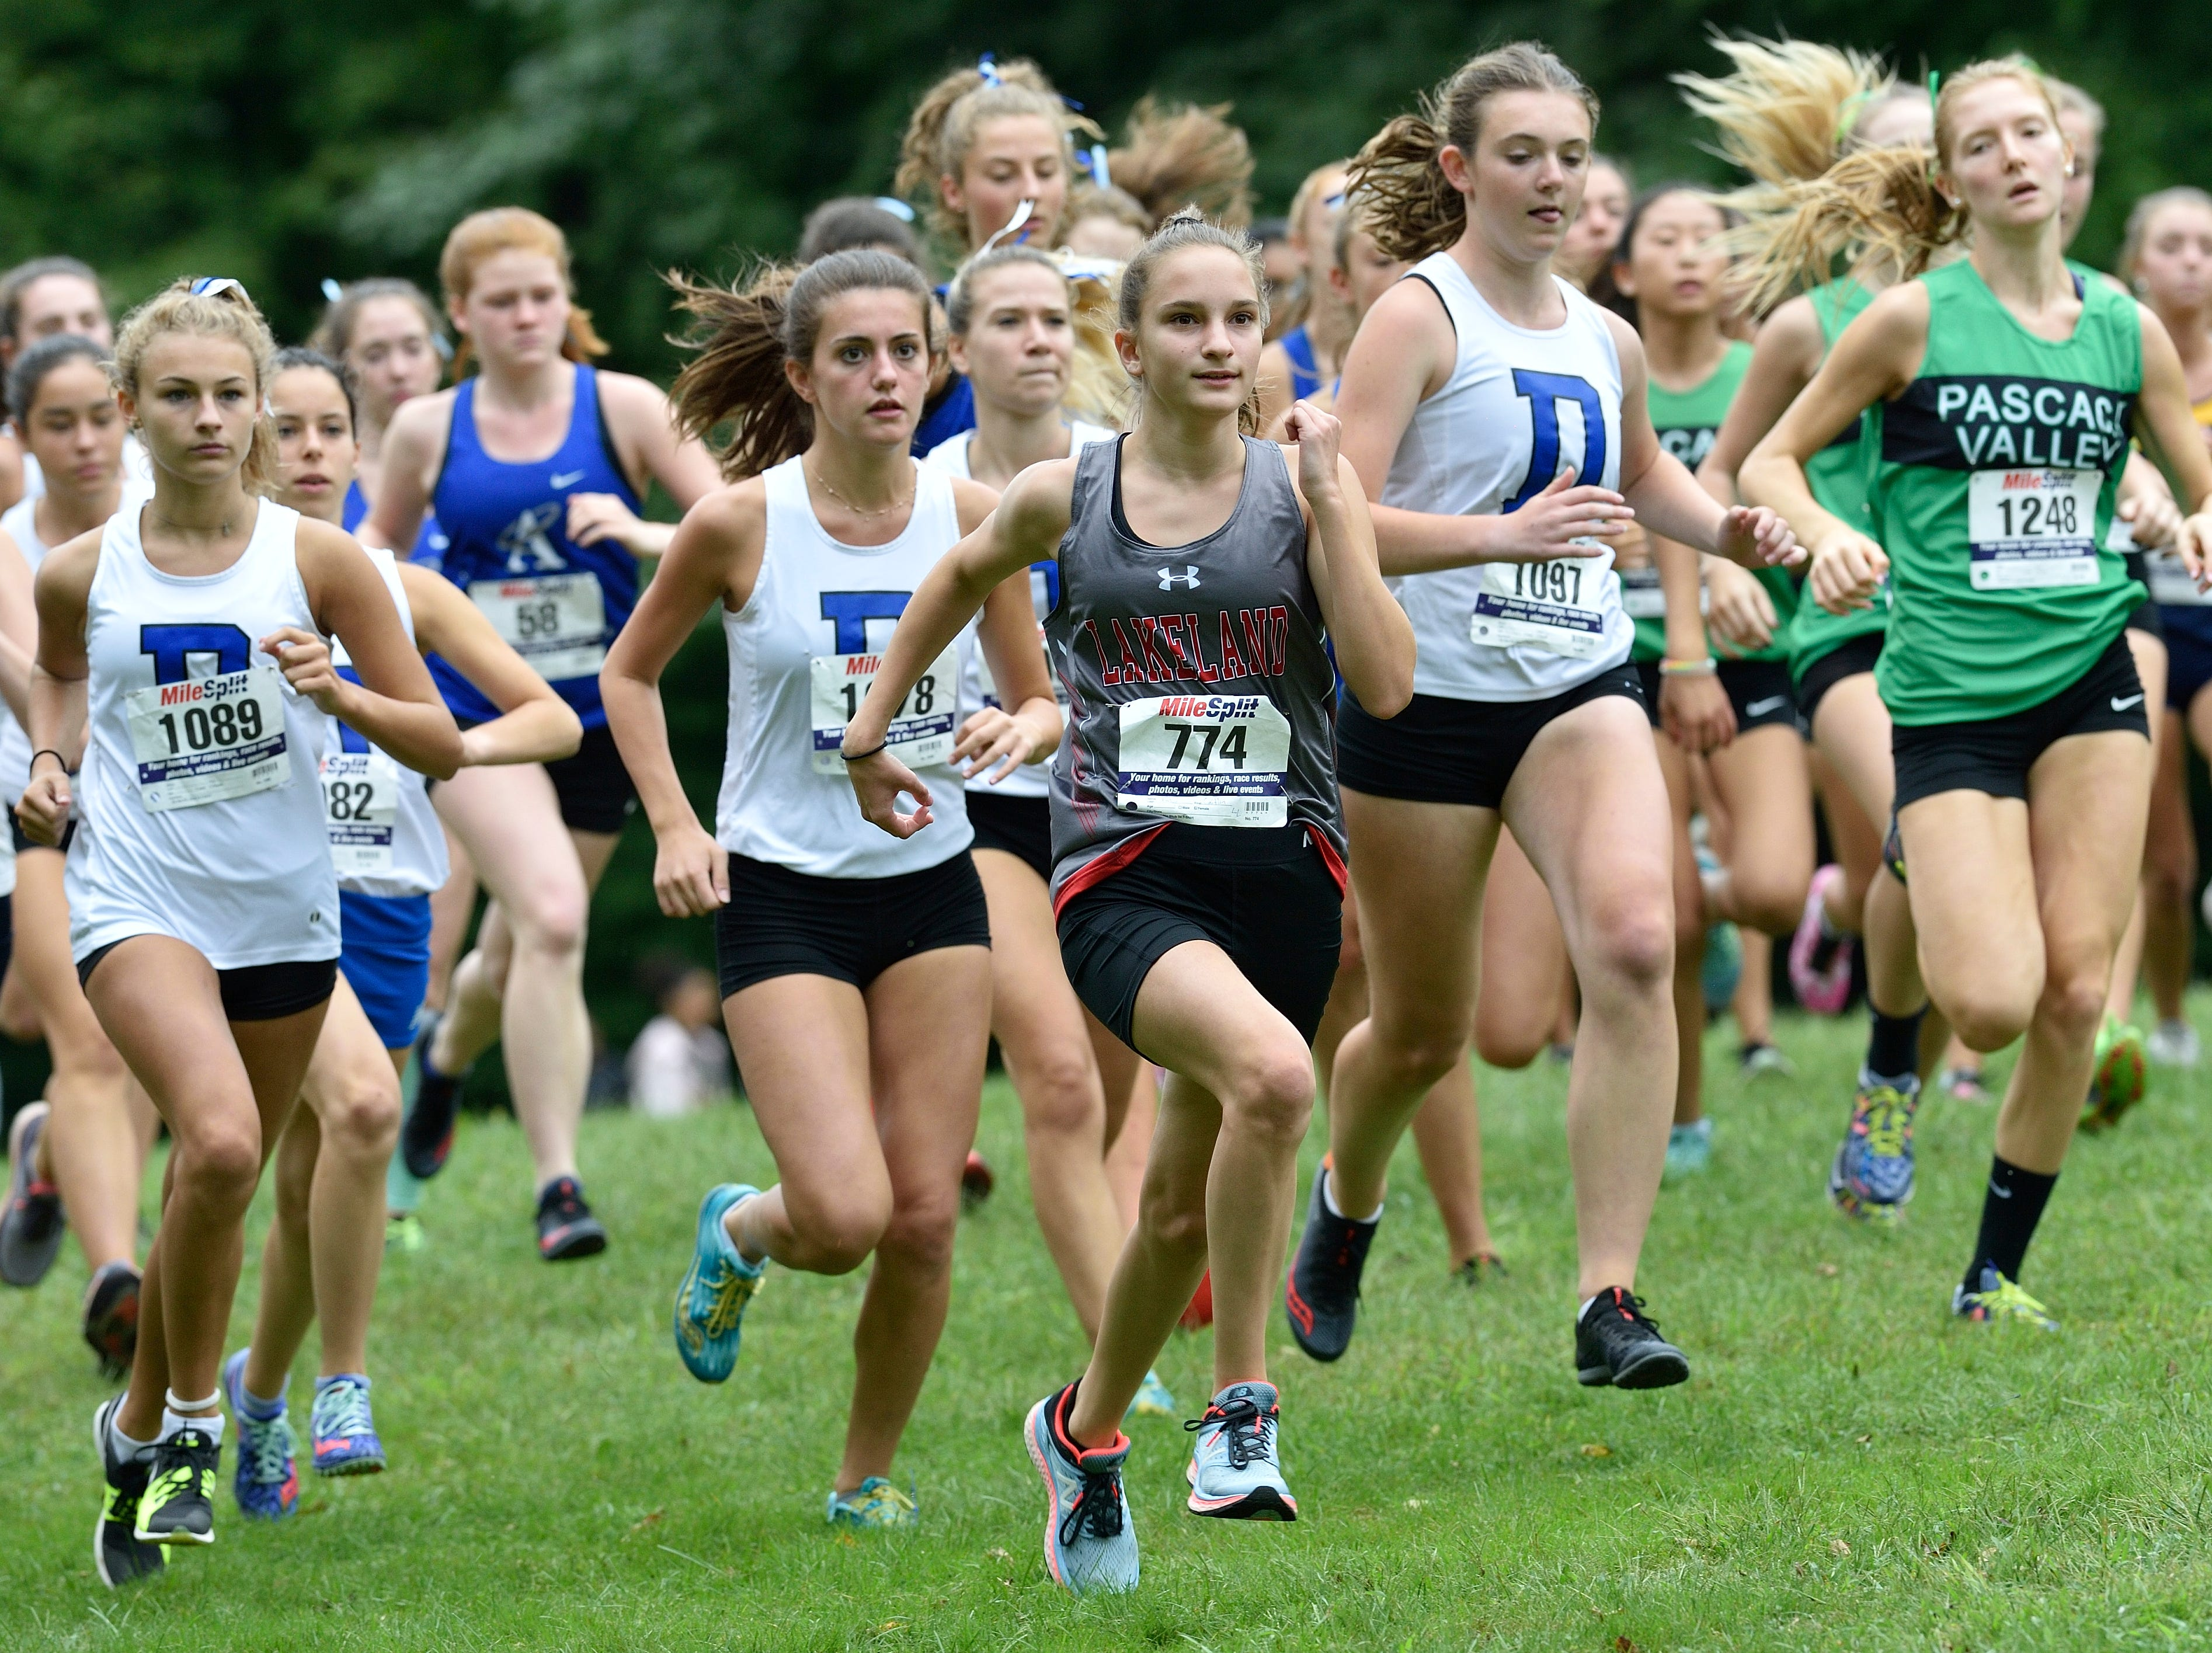 The start of the girls varsity B cross country race at Darlington County Park in Mahwah.